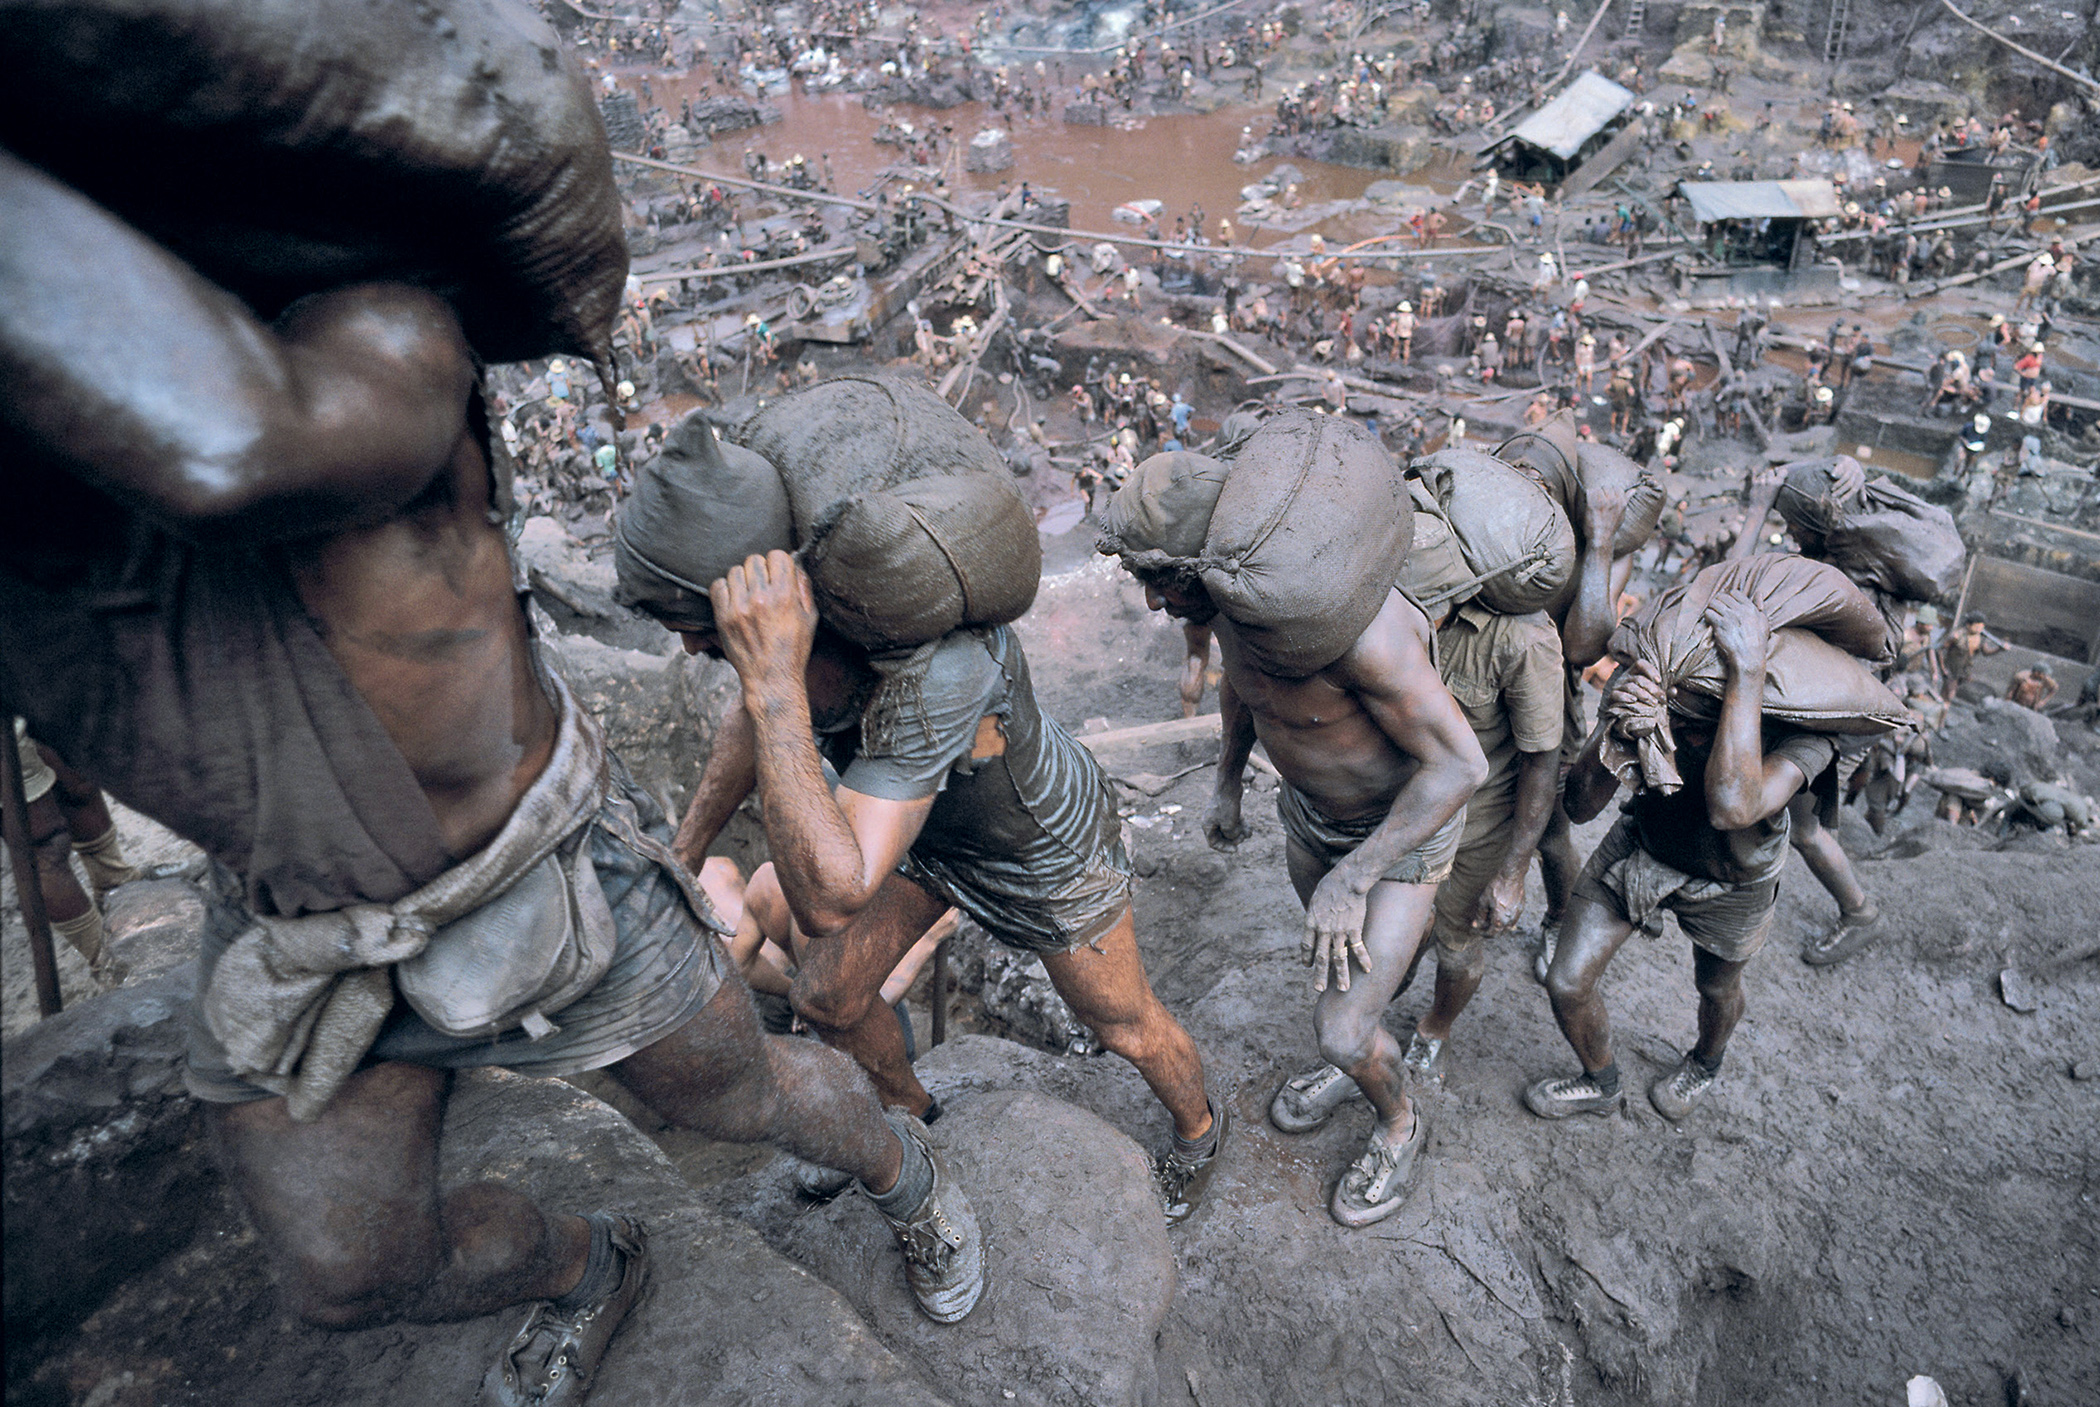 Hell on earth: the vast open-pit Serra Pelada goldmine in Brazil, 1985. Some 100,000 diggers were employed, each carrying 20-kilo sacks of ore up 400 metres via muddy steps and wood and rope ladders. Violence and deaths were commonplace.